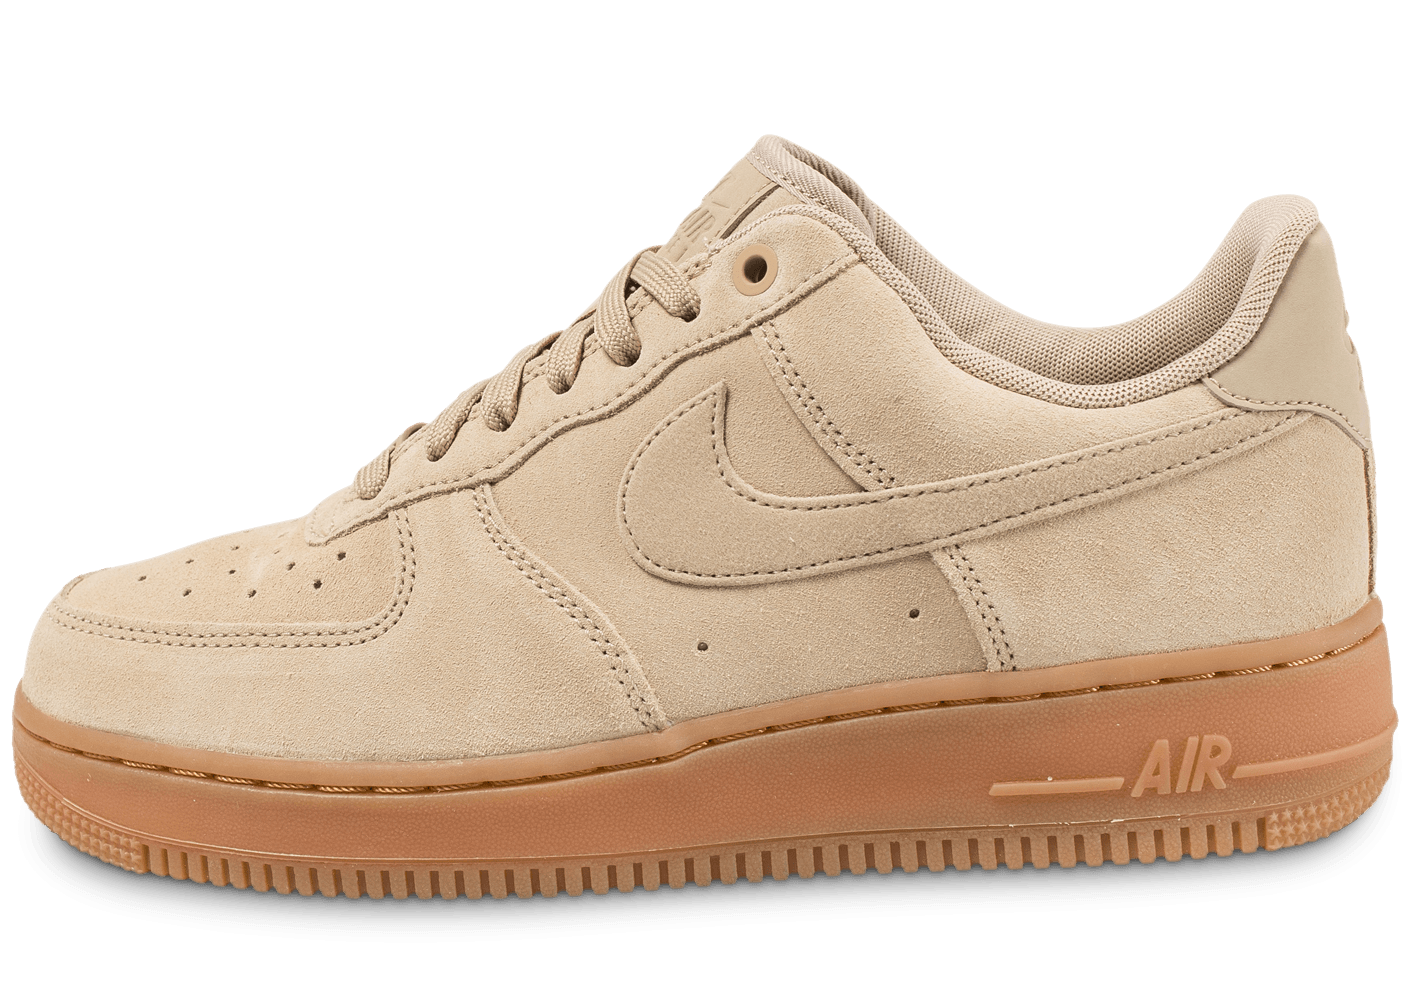 chaussures nike air force 1 femmes. Black Bedroom Furniture Sets. Home Design Ideas